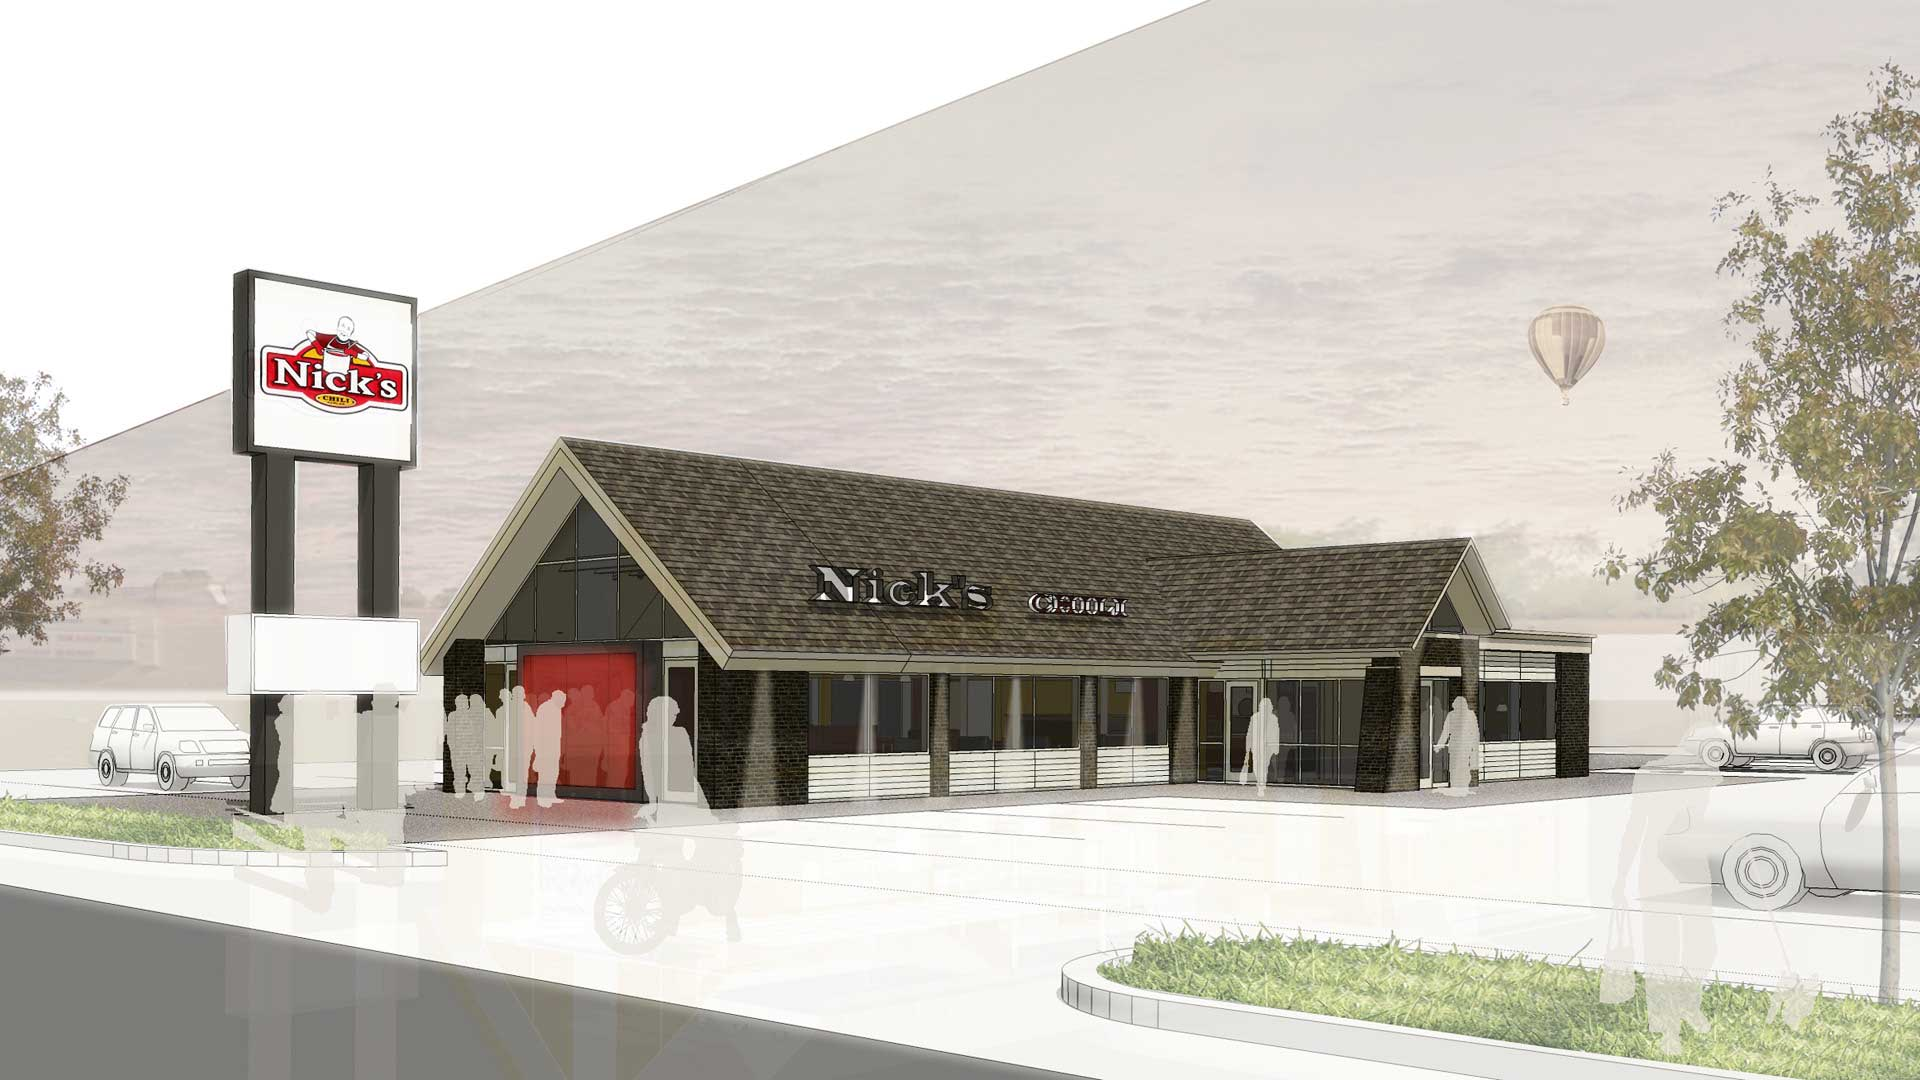 Nick's Chili Parlor Family Restaurant- Exterior Rendering - HAUS Architecture, Christopher Short, Indianapolis Architect